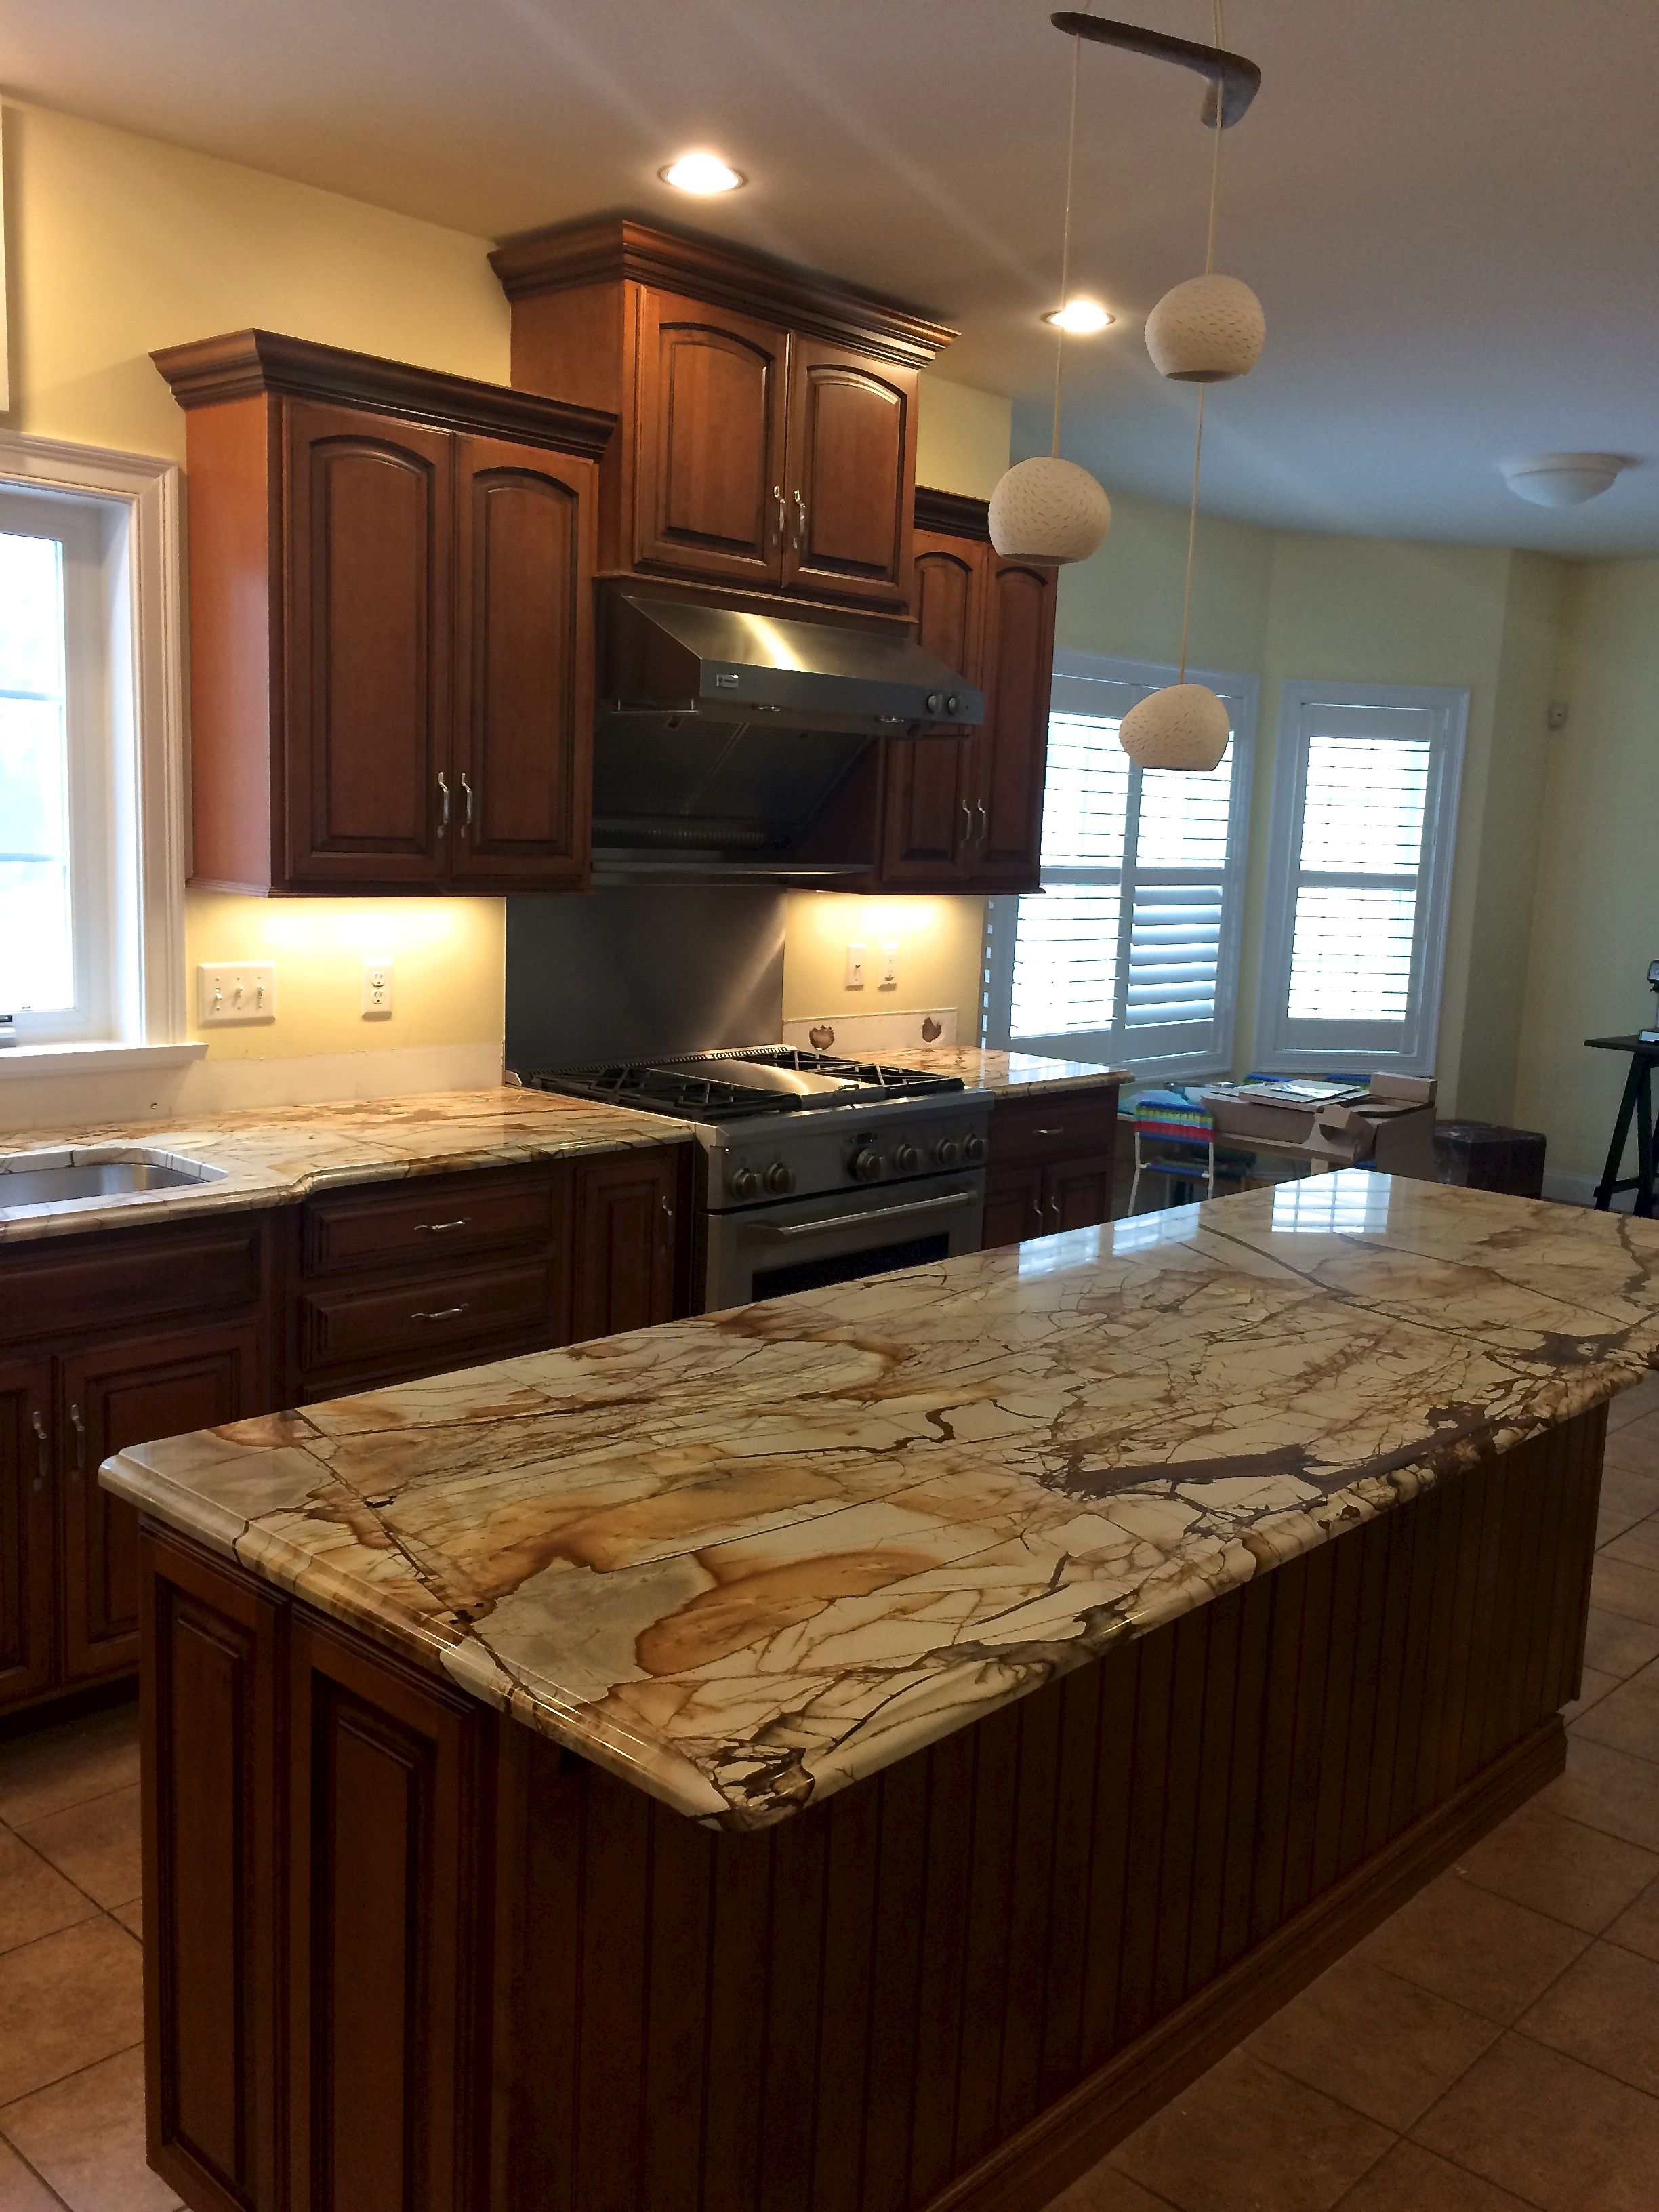 An In Progress Photo Of A Kitchen Countertop Replacement With Beautiful New Roma Imperial